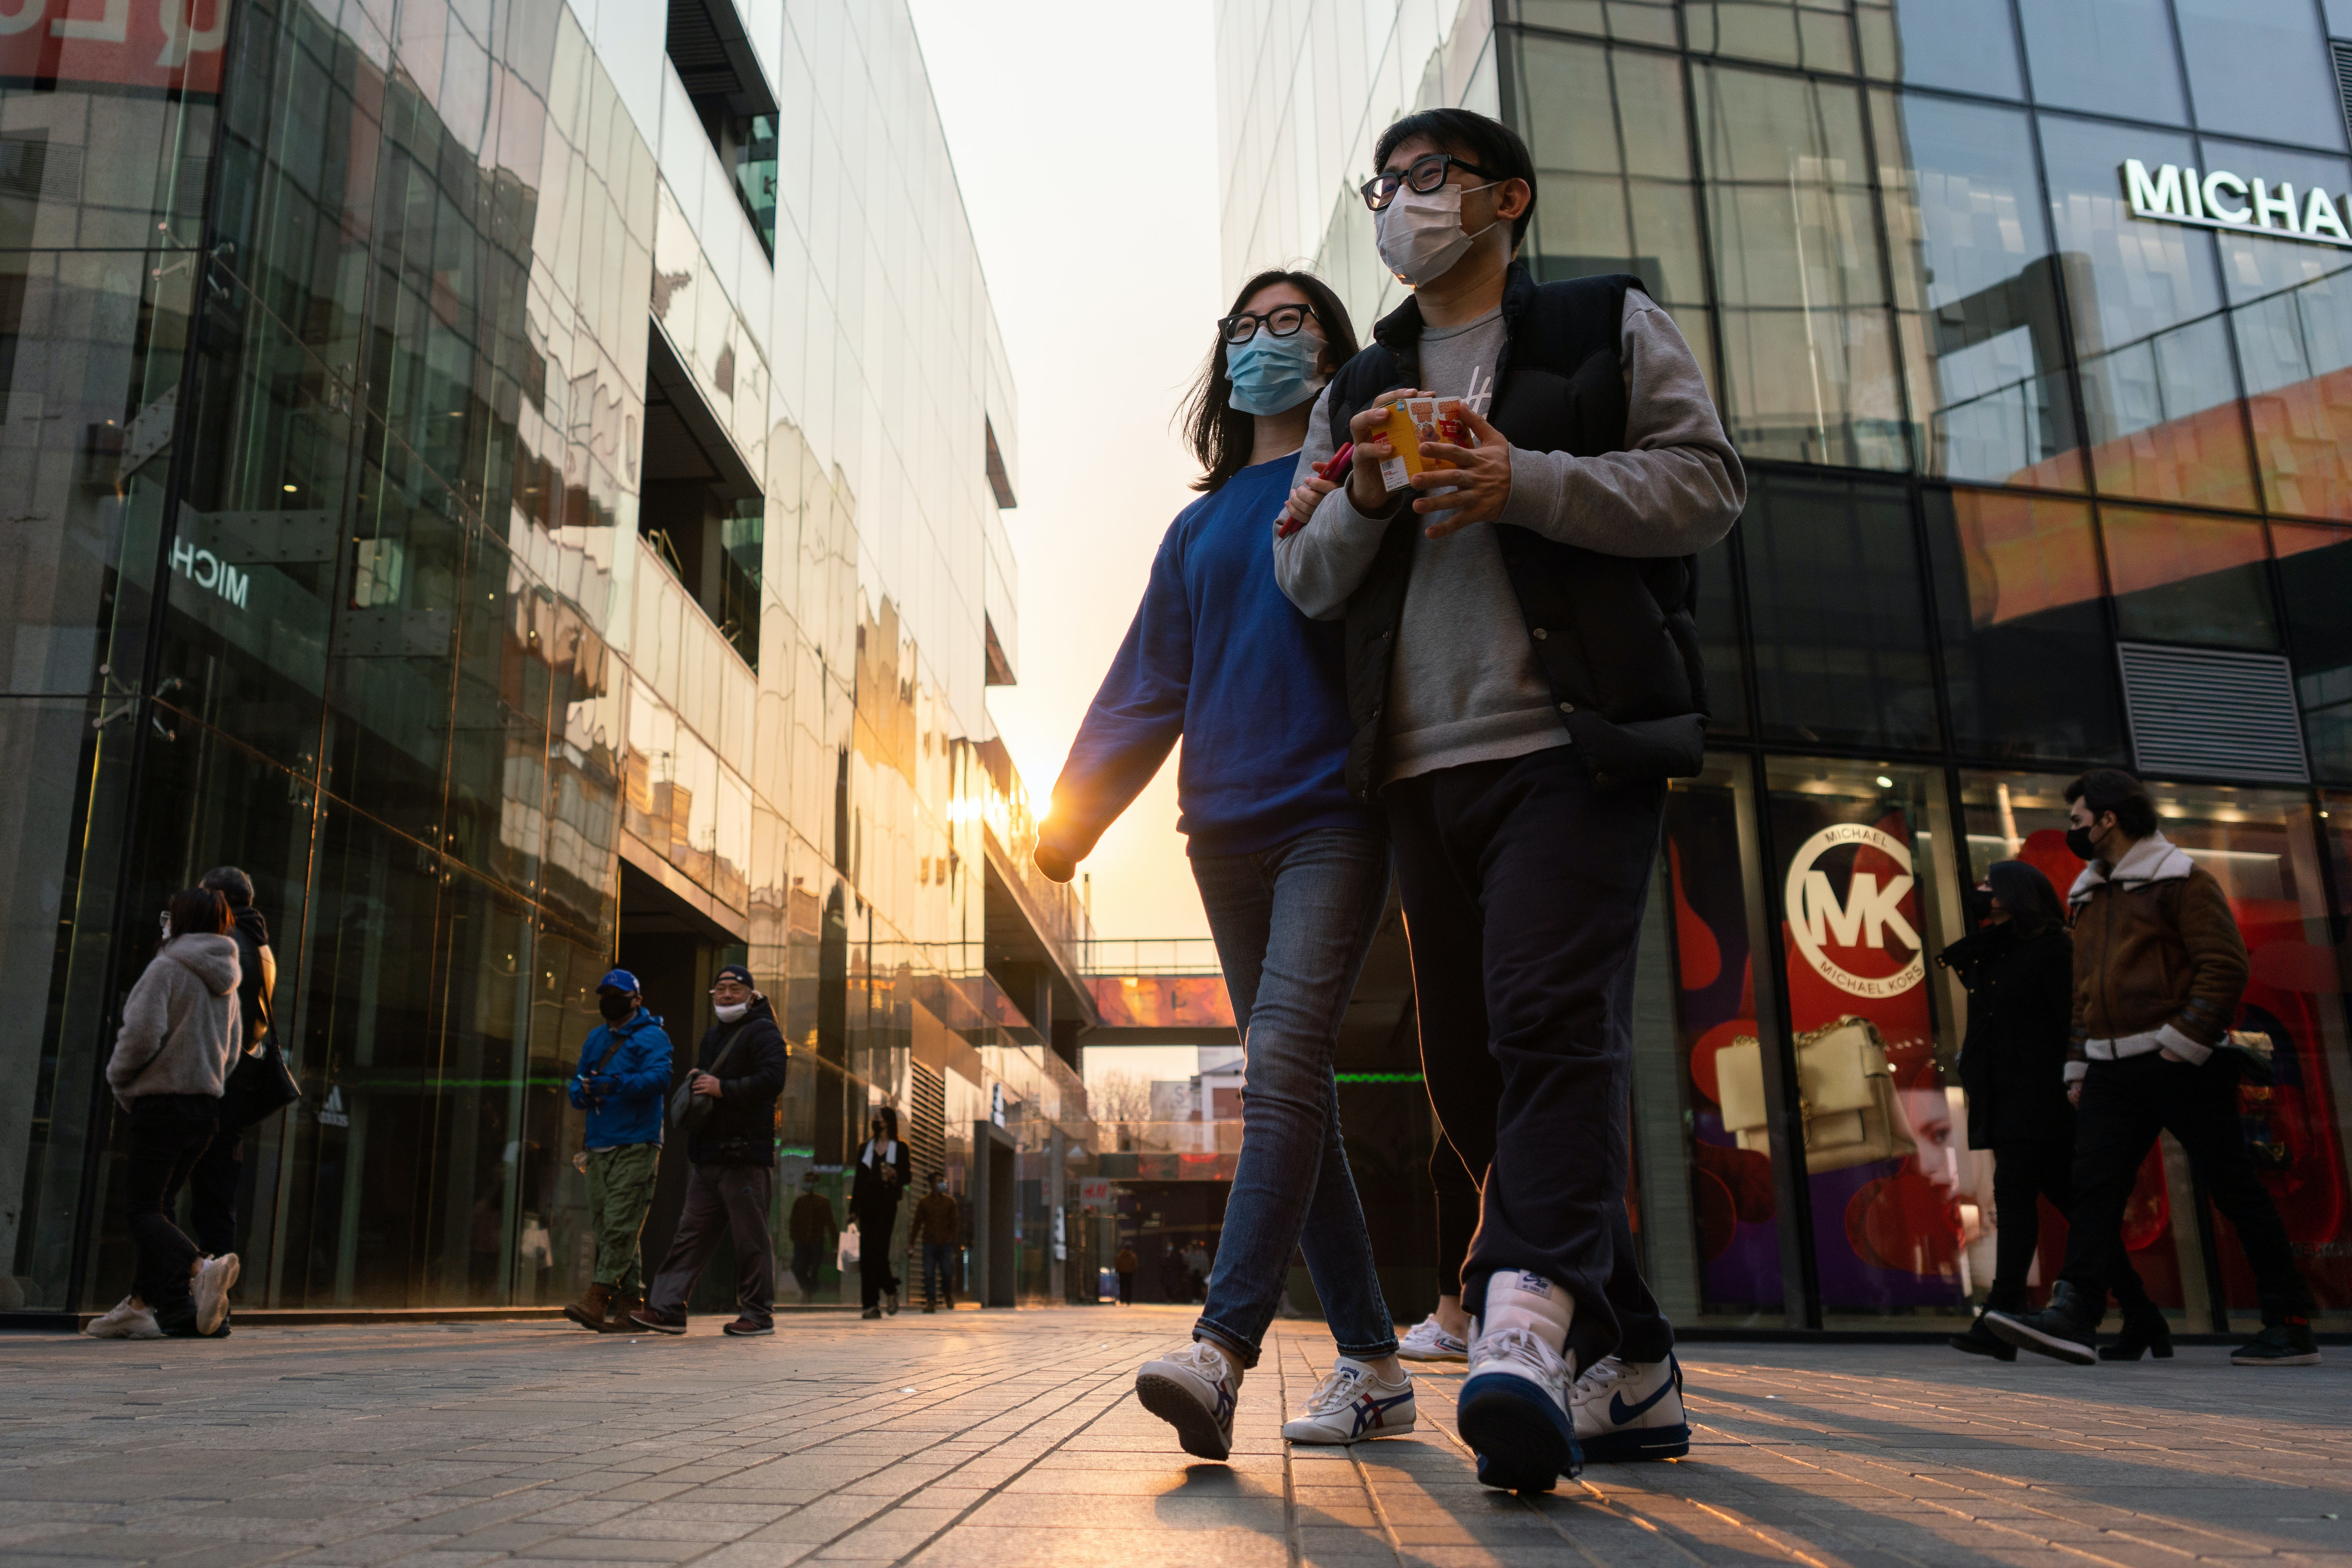 Beijing daily life amid the Covid-19 pandemic. Getty Images.